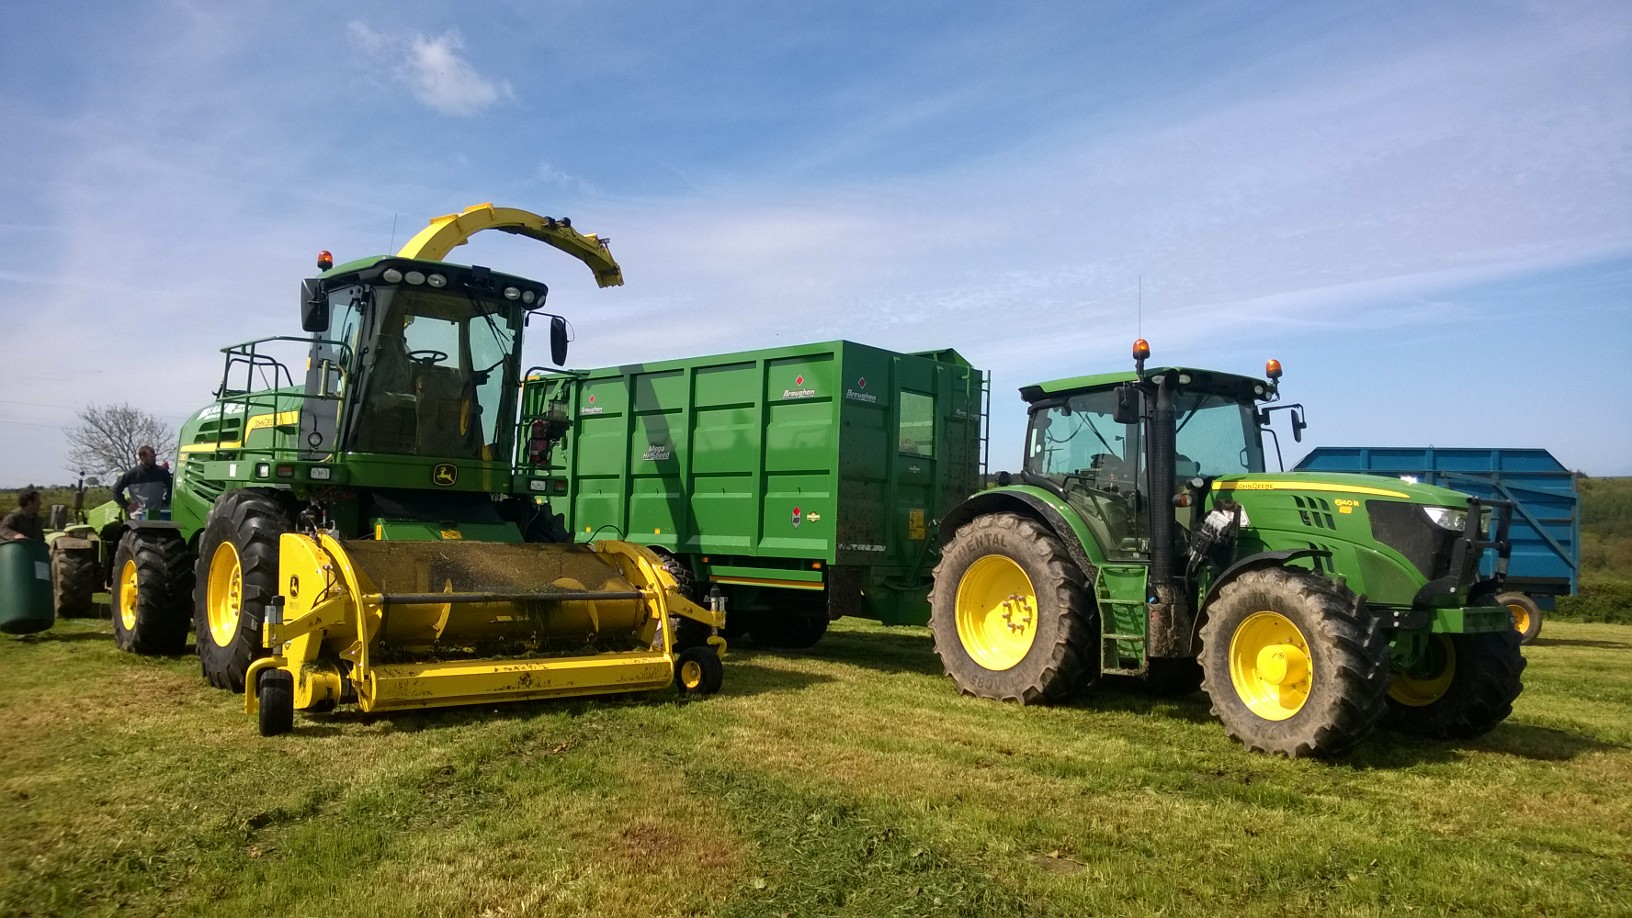 John Deere Self Propelled Forager